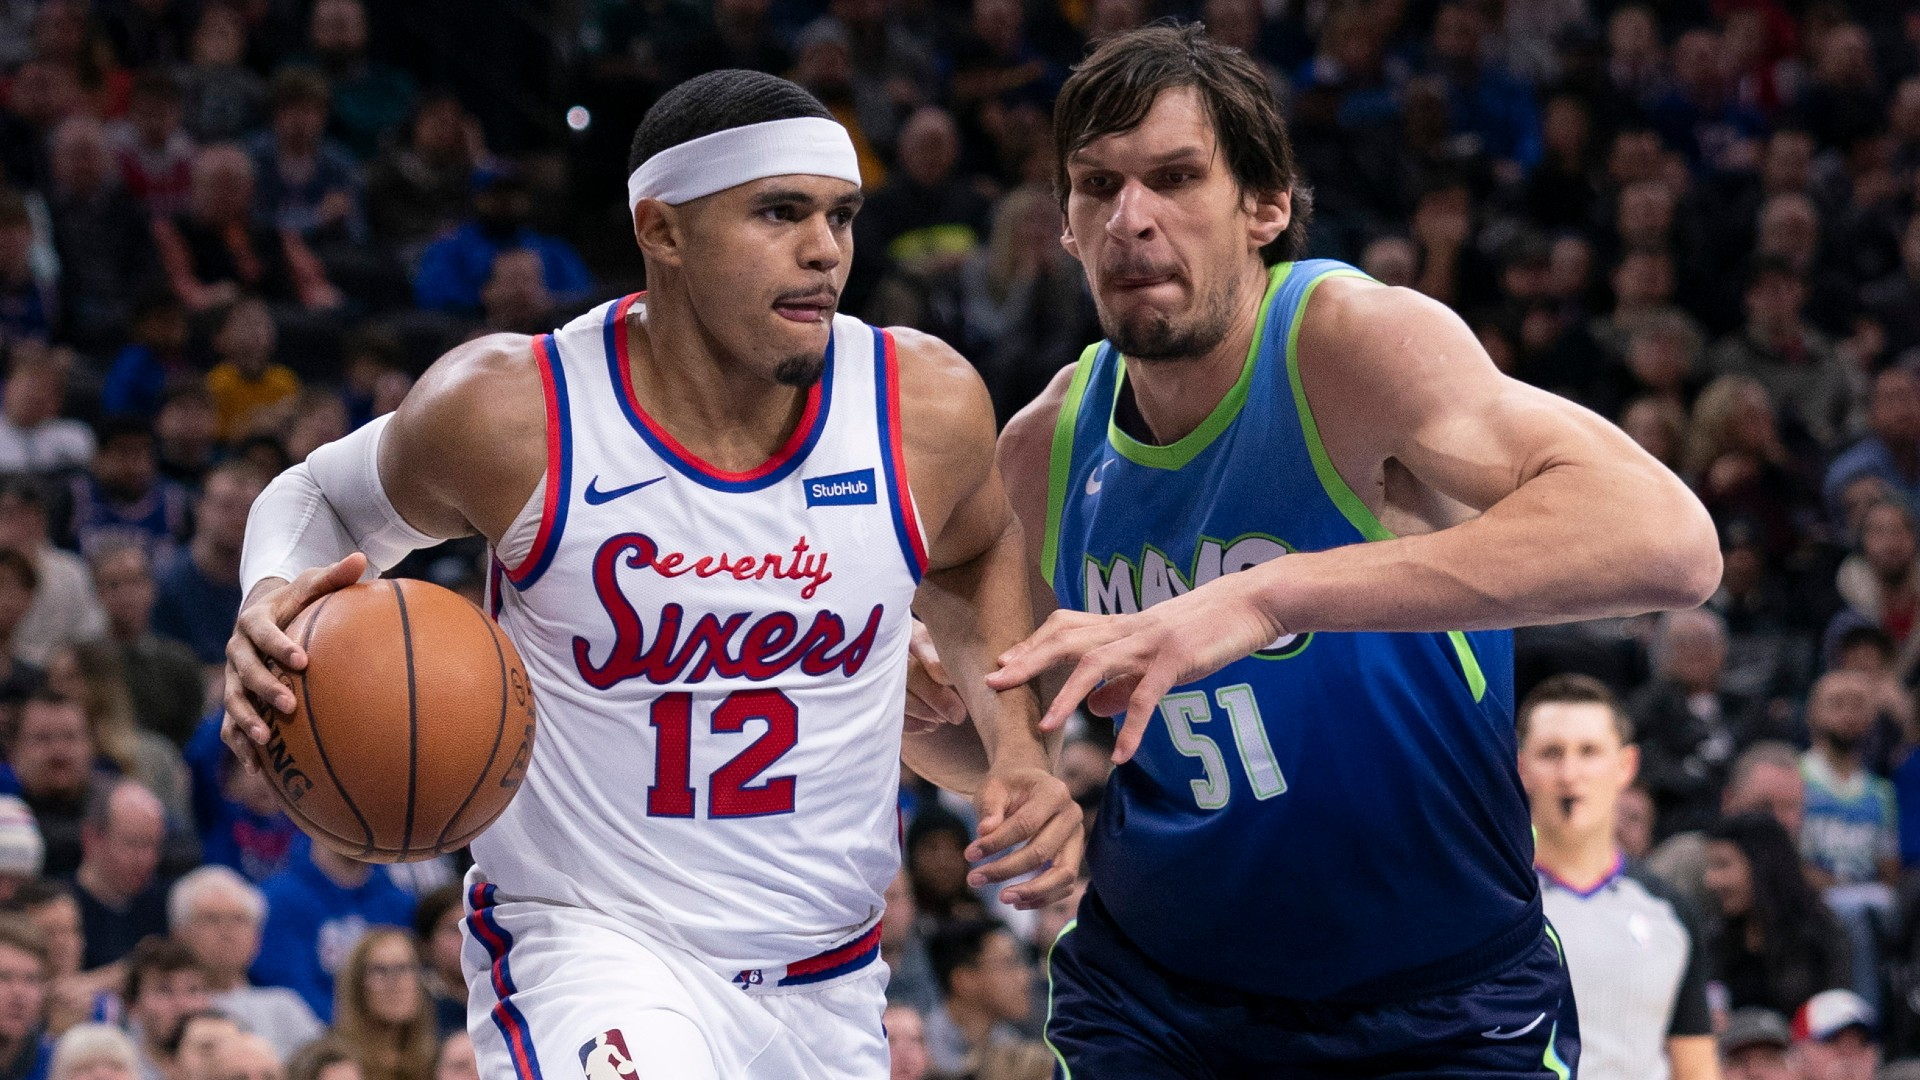 Best forwards in the NBA for 2021-22: ranking of the 30 starters